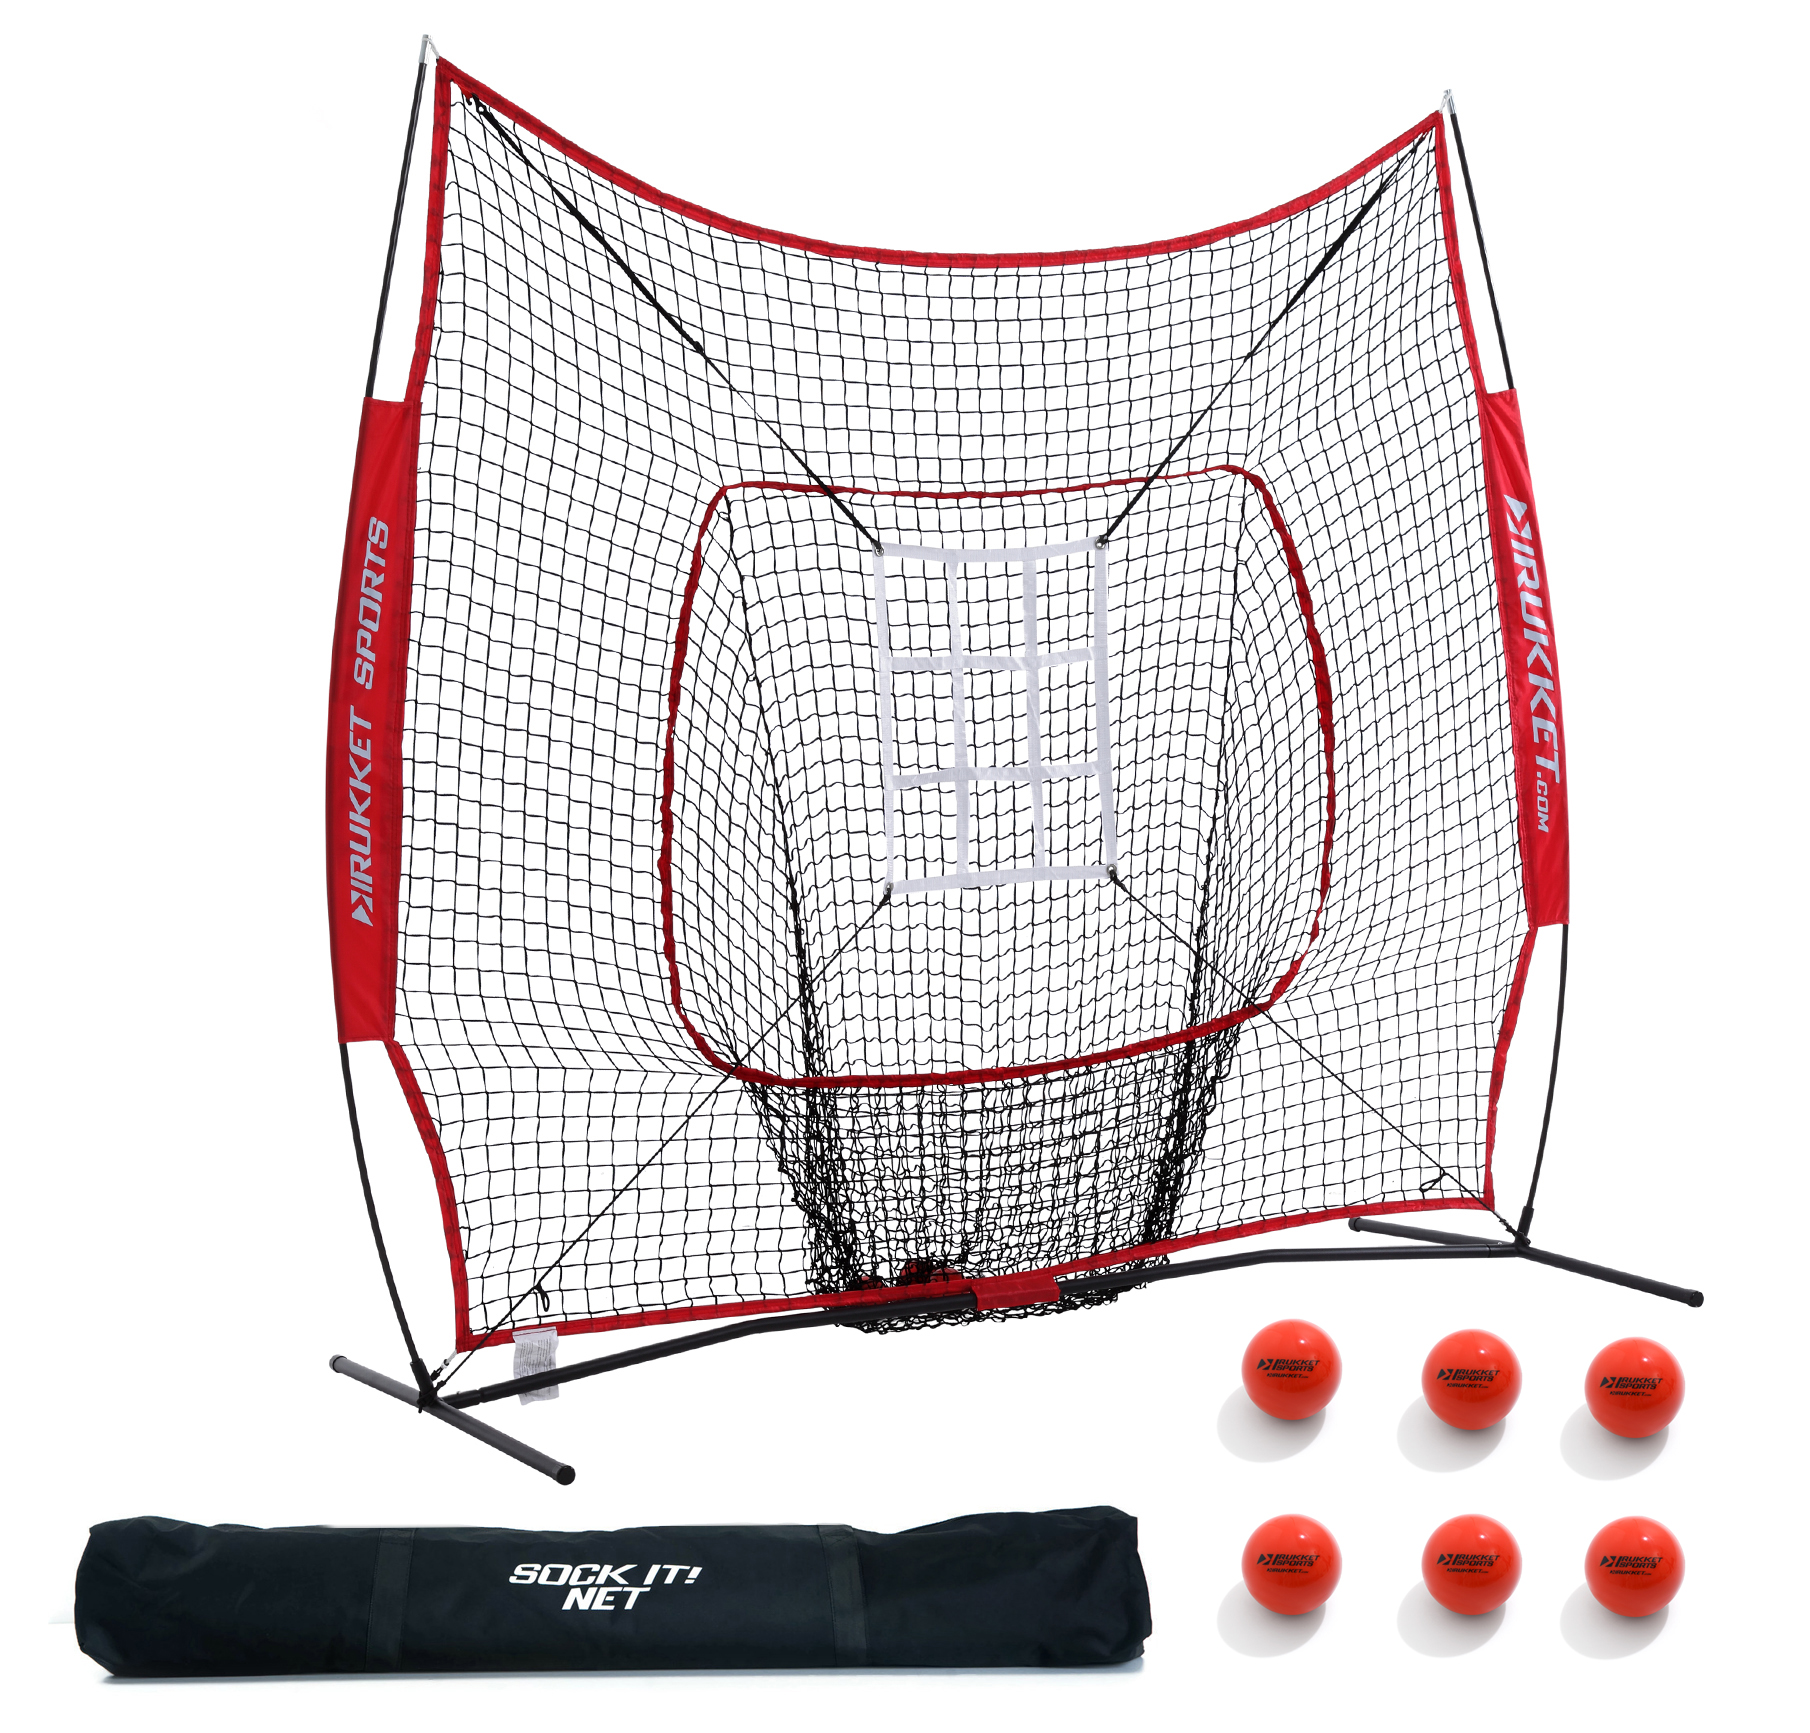 Rukket 7x7 Baseball & Softball Hitting, Pitching, Batting and Catching Net, With Carry Bag, Strike Zone Target, 6 Weighted Balls